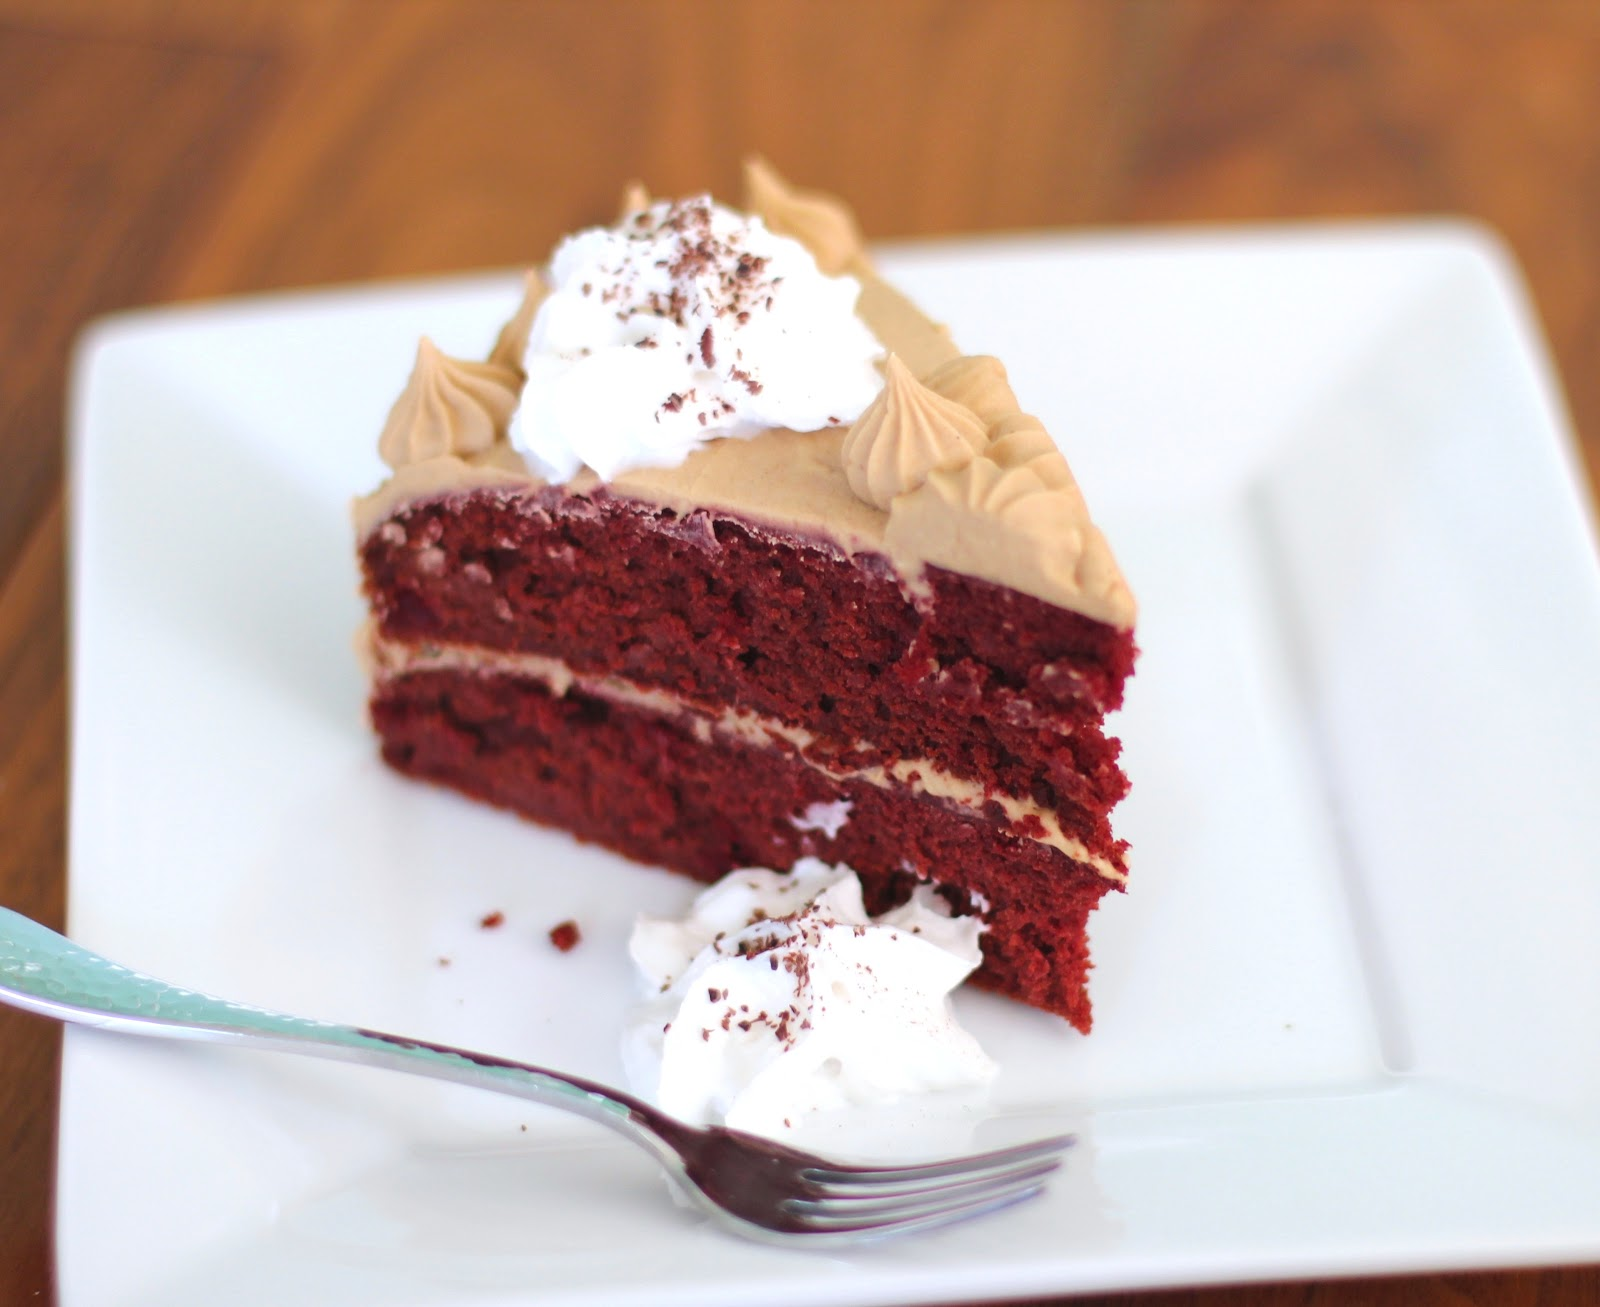 Healthy Red Velvet Cake with a Special Vanilla Protein Frosting